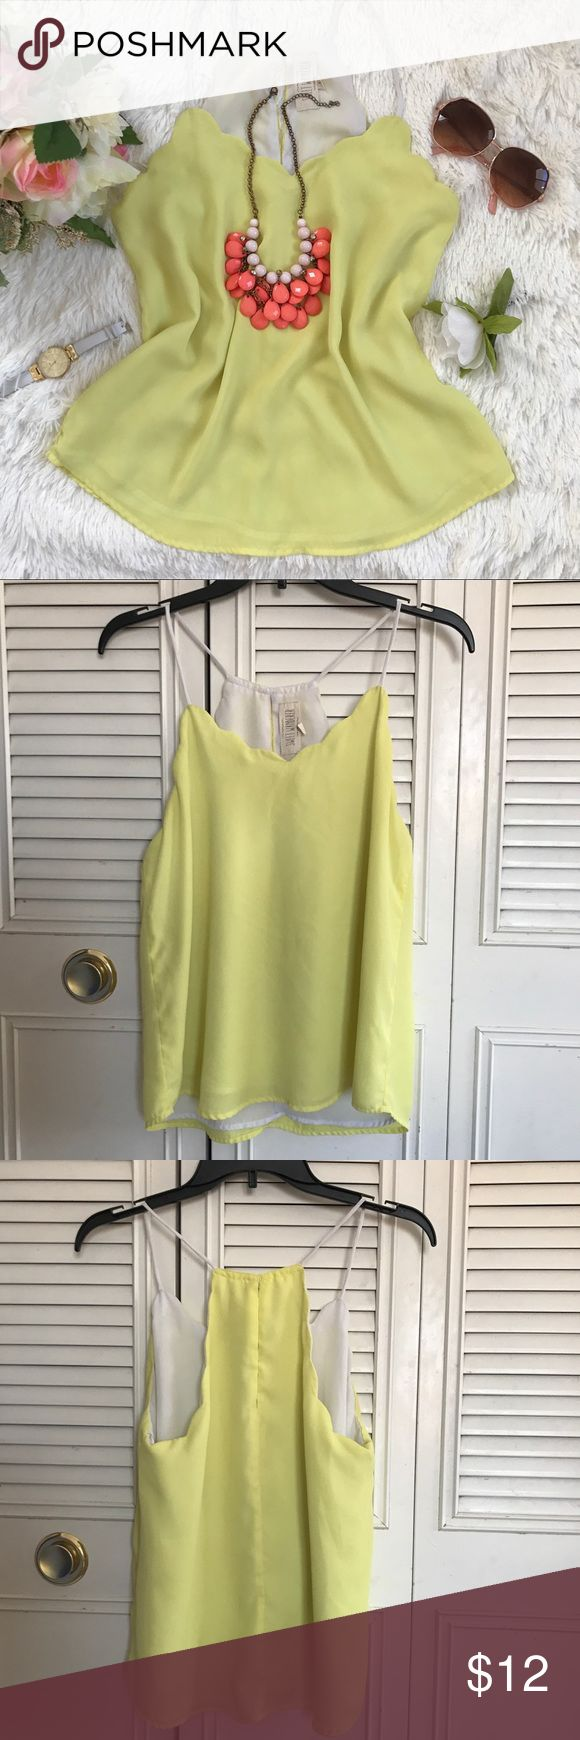 Sweet Wanderer baby yellow tank top This cute women's tank top is come in a baby yellow color. Size S, true to size. The traps are not adjustable. There is a little pen mark on the front of the tank top. See the last picture. Worn once, still in good condition.   Material: 100% Polyester  Don't afraid to make an offer. Best offer accept. Sweet Wanderer Tops Tank Tops